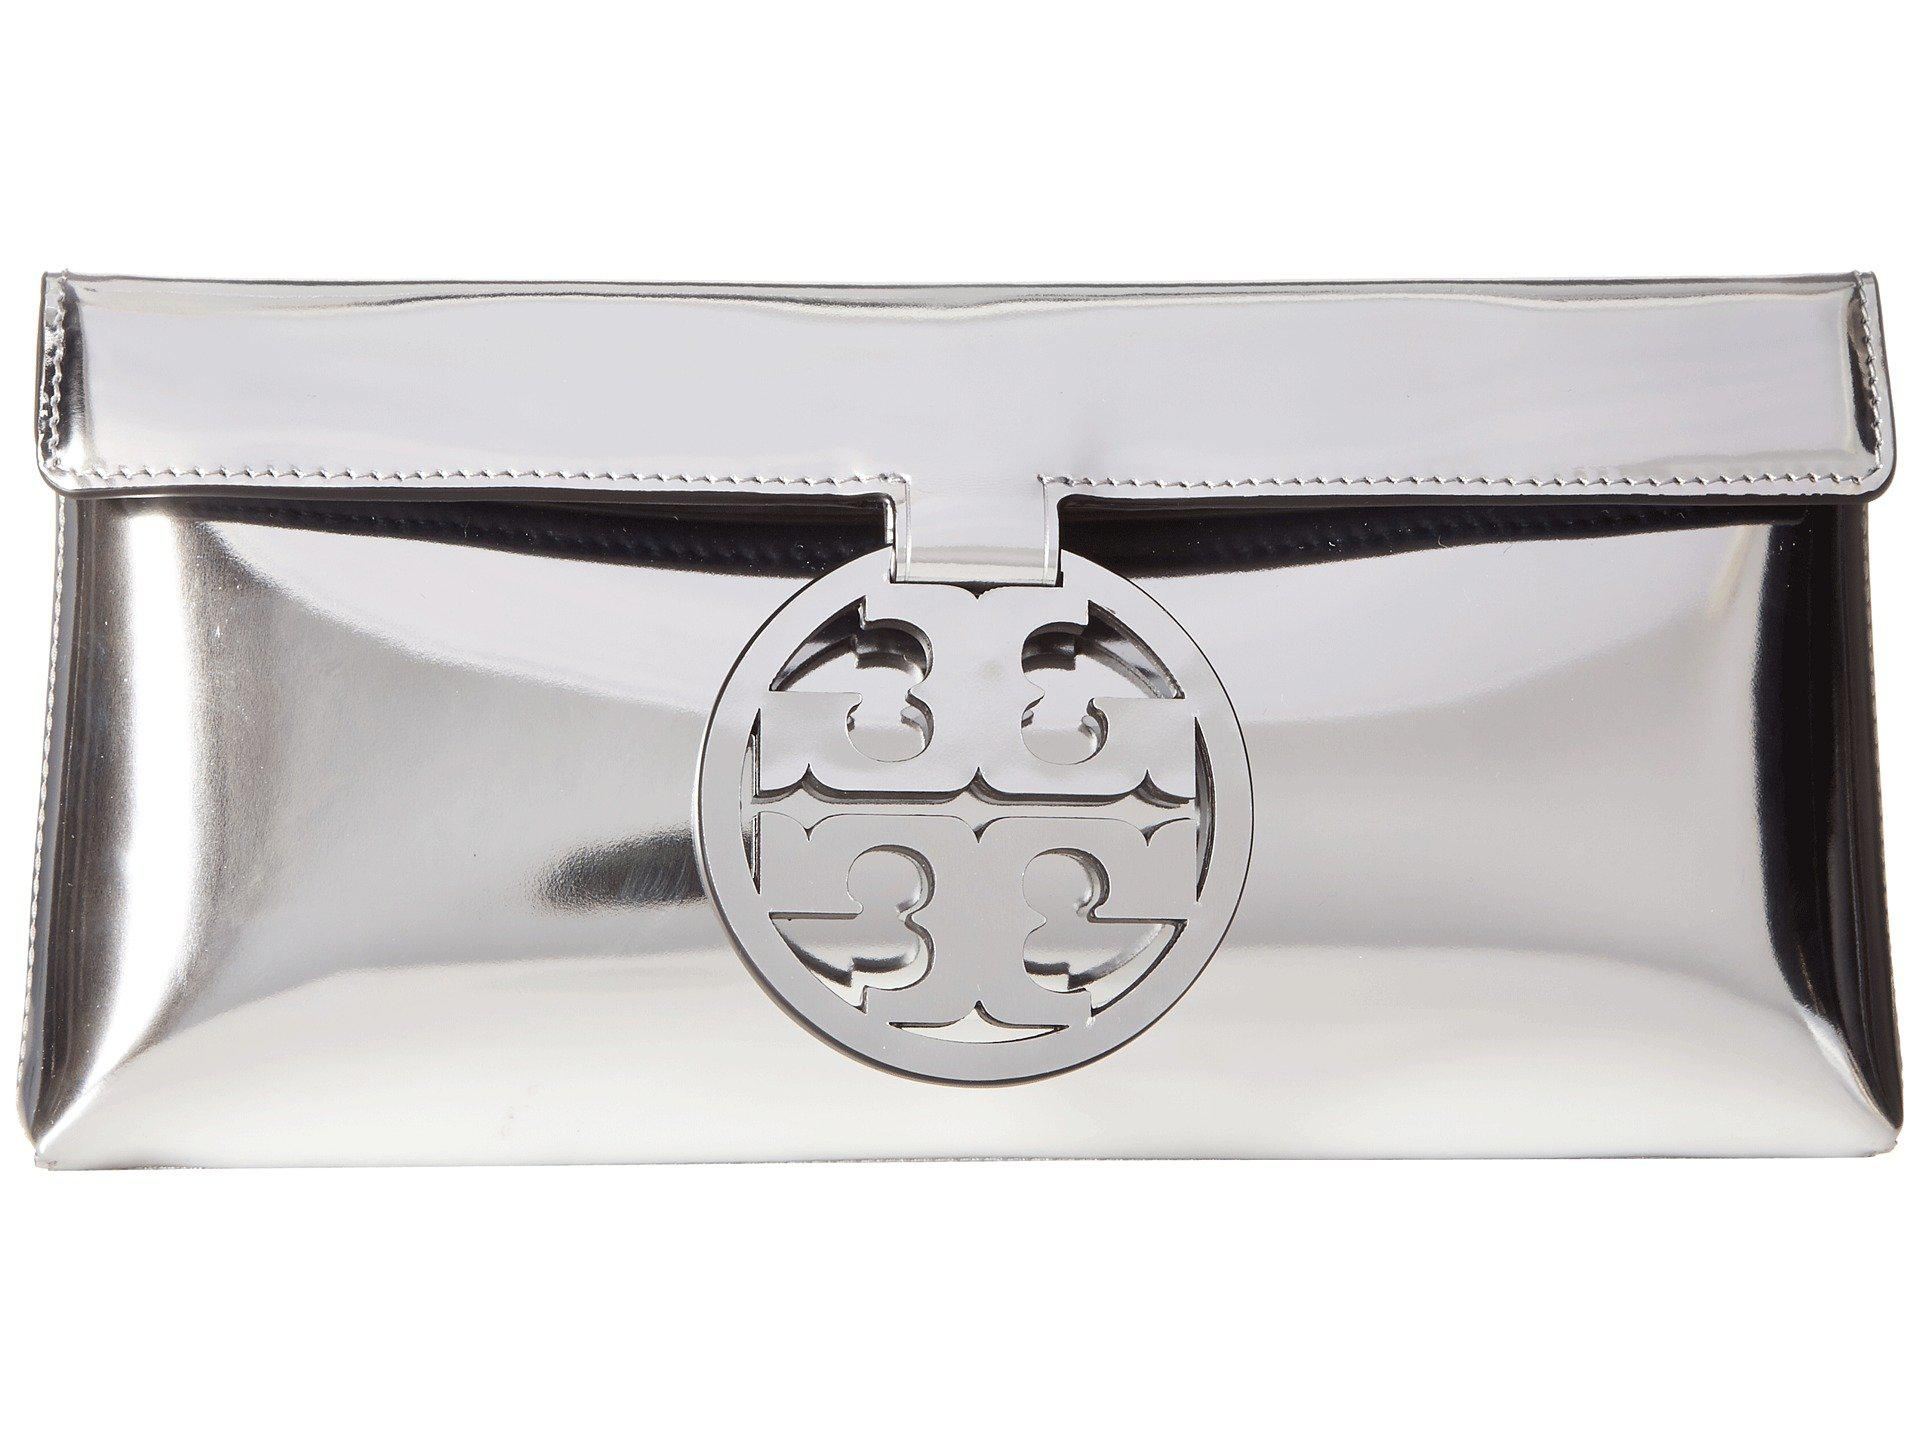 cf778a352f9b Gallery. Previously sold at  Zappos · Women s Metallic Clutch Bags ...